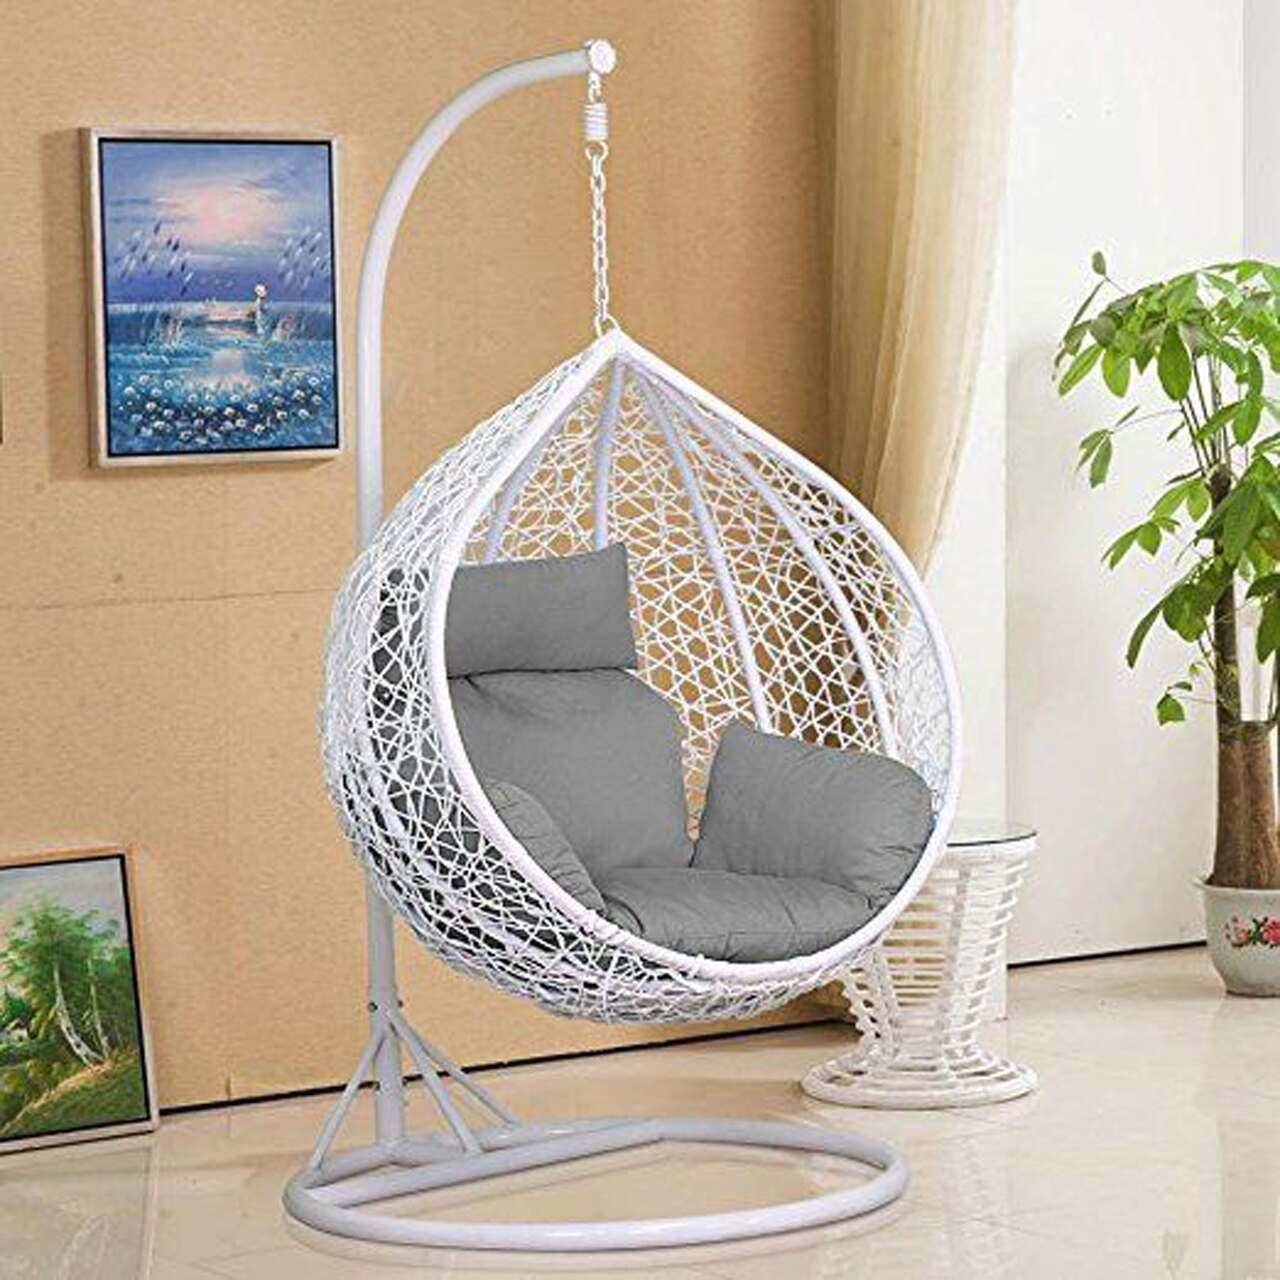 Harrier Hanging Egg Swing Chairs [2 Sizes]